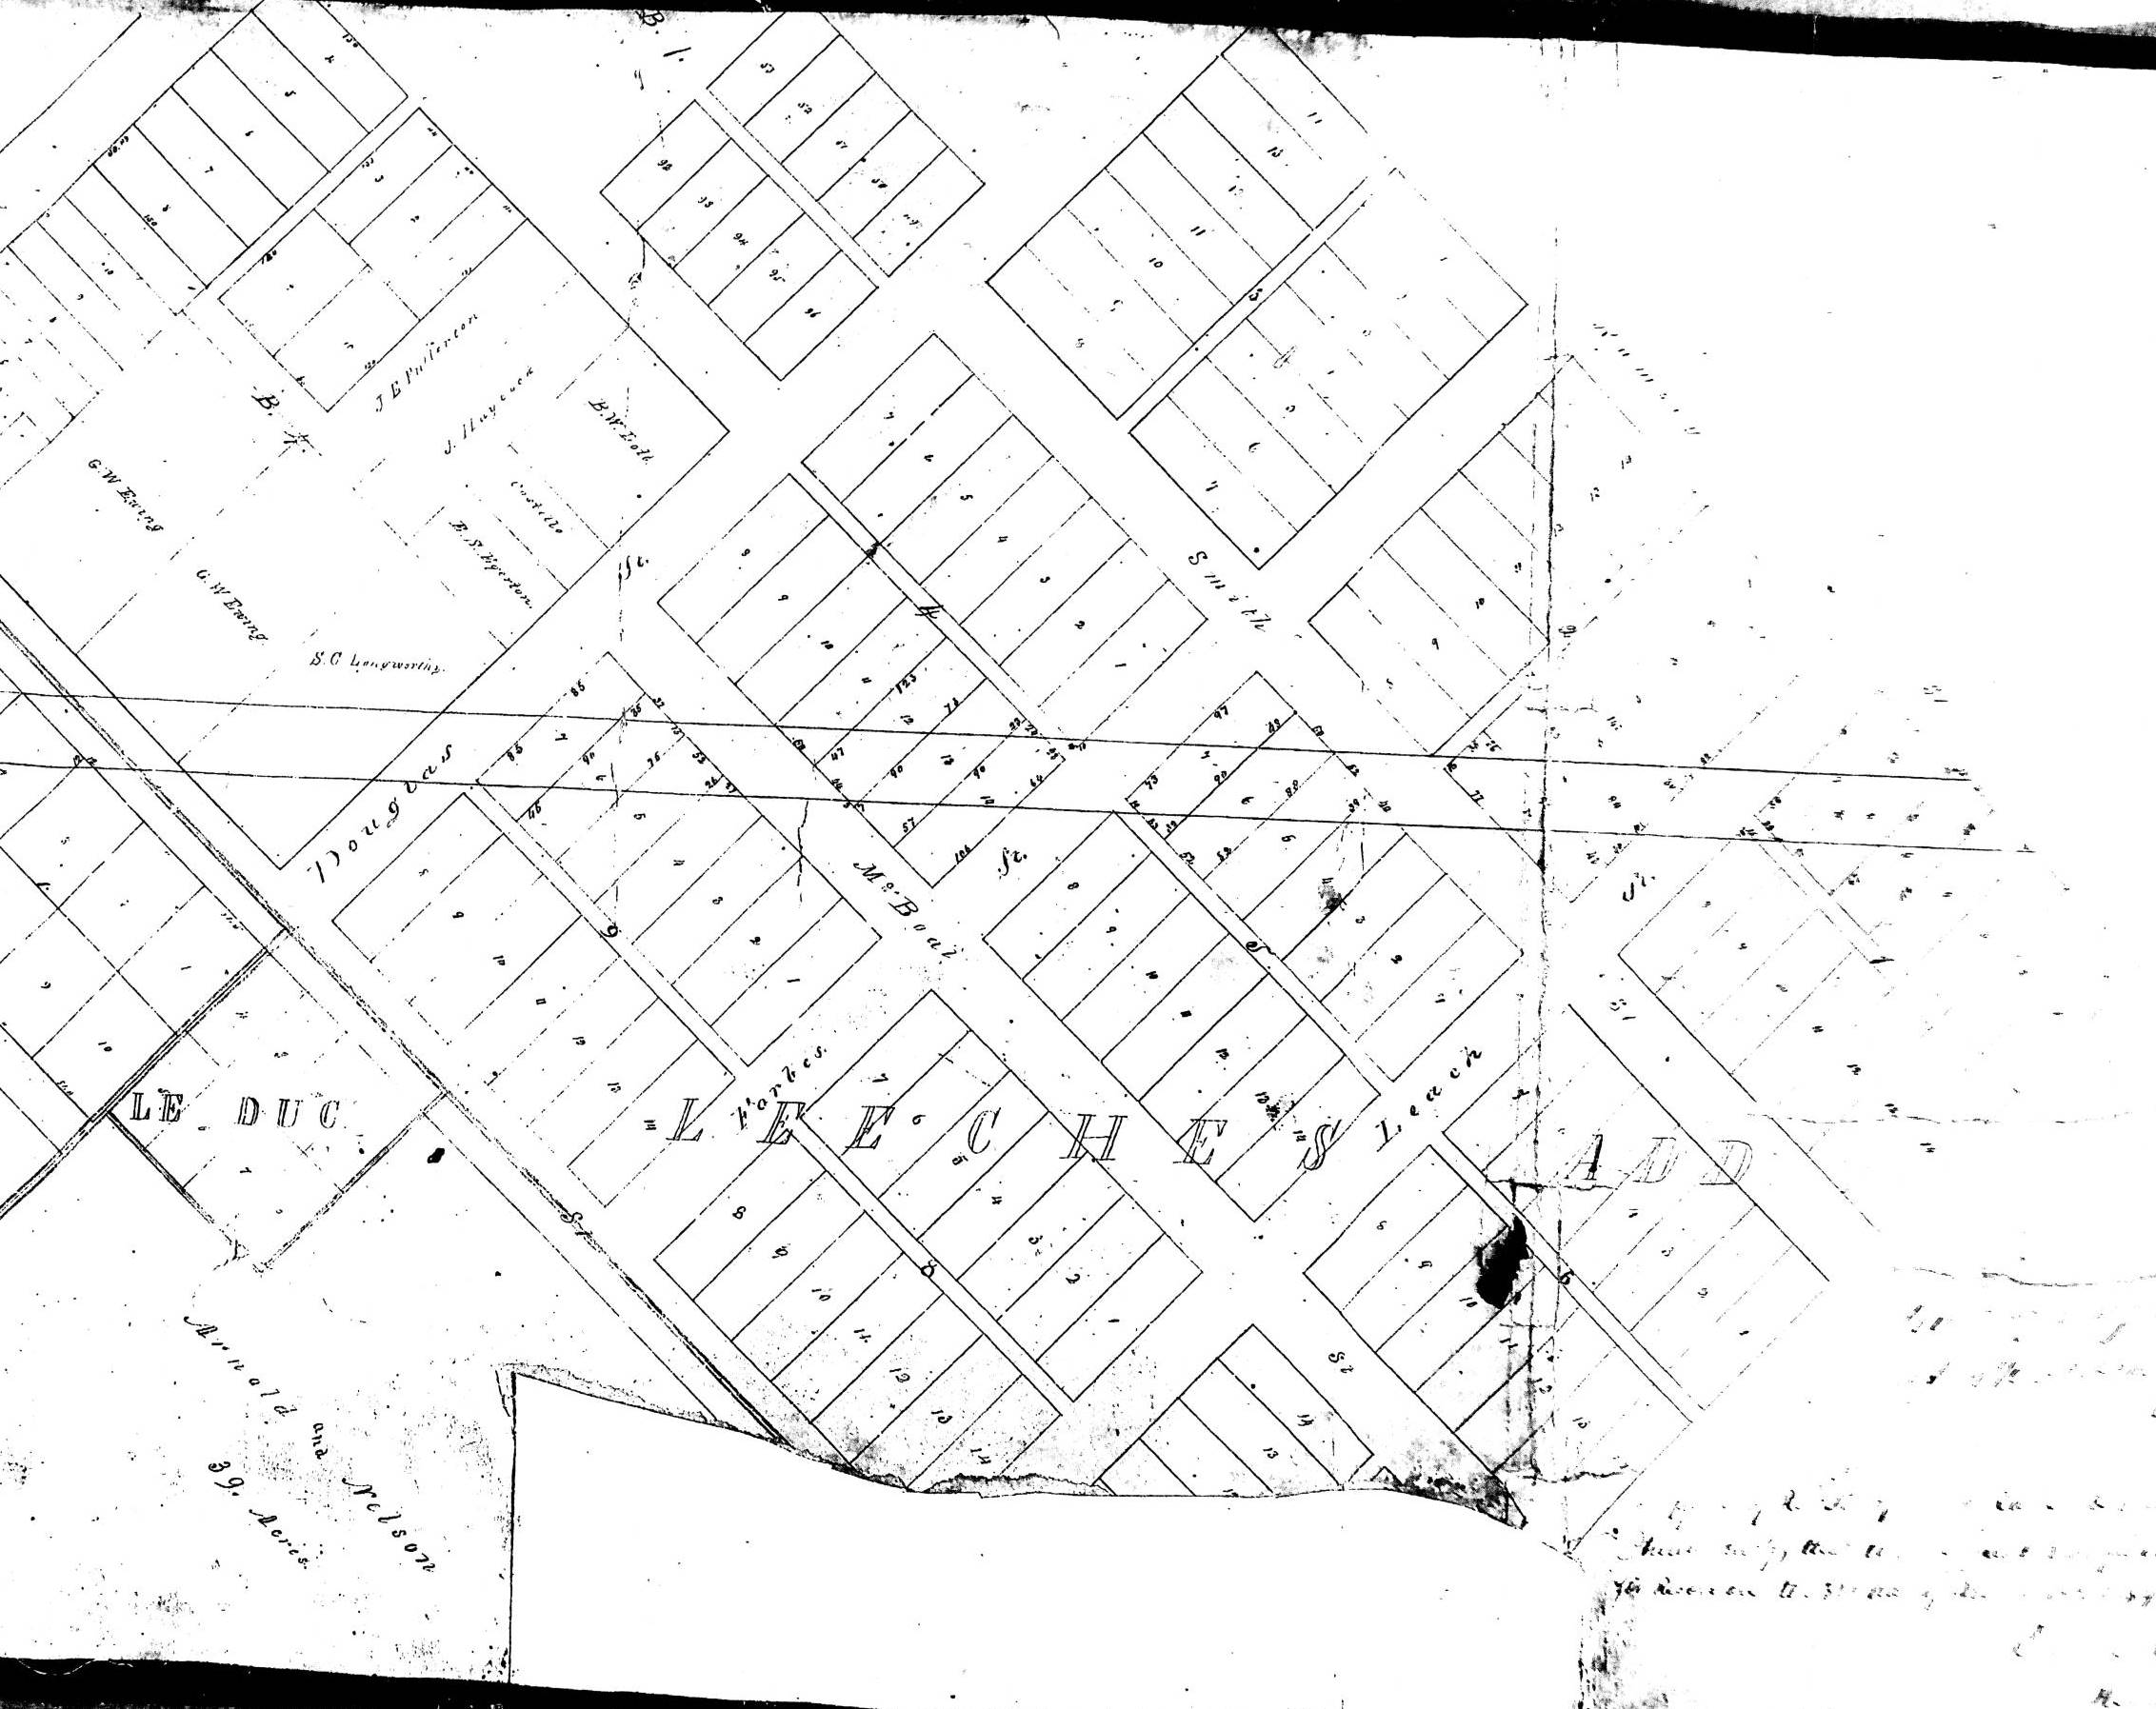 Portion of second and final plat for the extension of Fort Road running through Leech's Addition, 1859.  The Waldman House is located in Block 9, Lot 14 on the left (west) side of Forbes Street.  On this final plat, the Fort Road extension runs southwest diagonally through Leech's Addition.